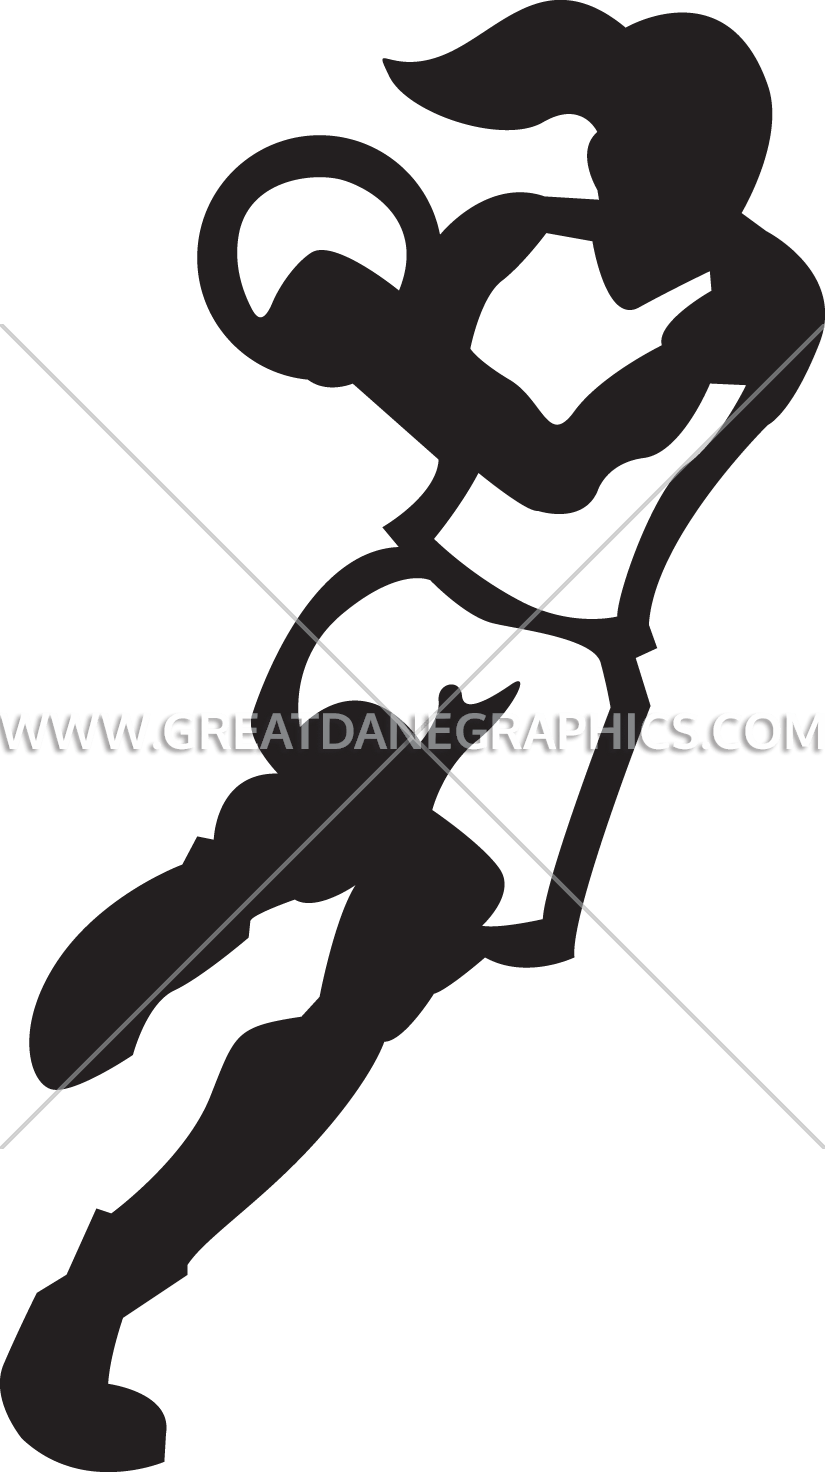 Girl basketball players clipart svg transparent Female Basketball Player Silhouette at GetDrawings.com | Free for ... svg transparent